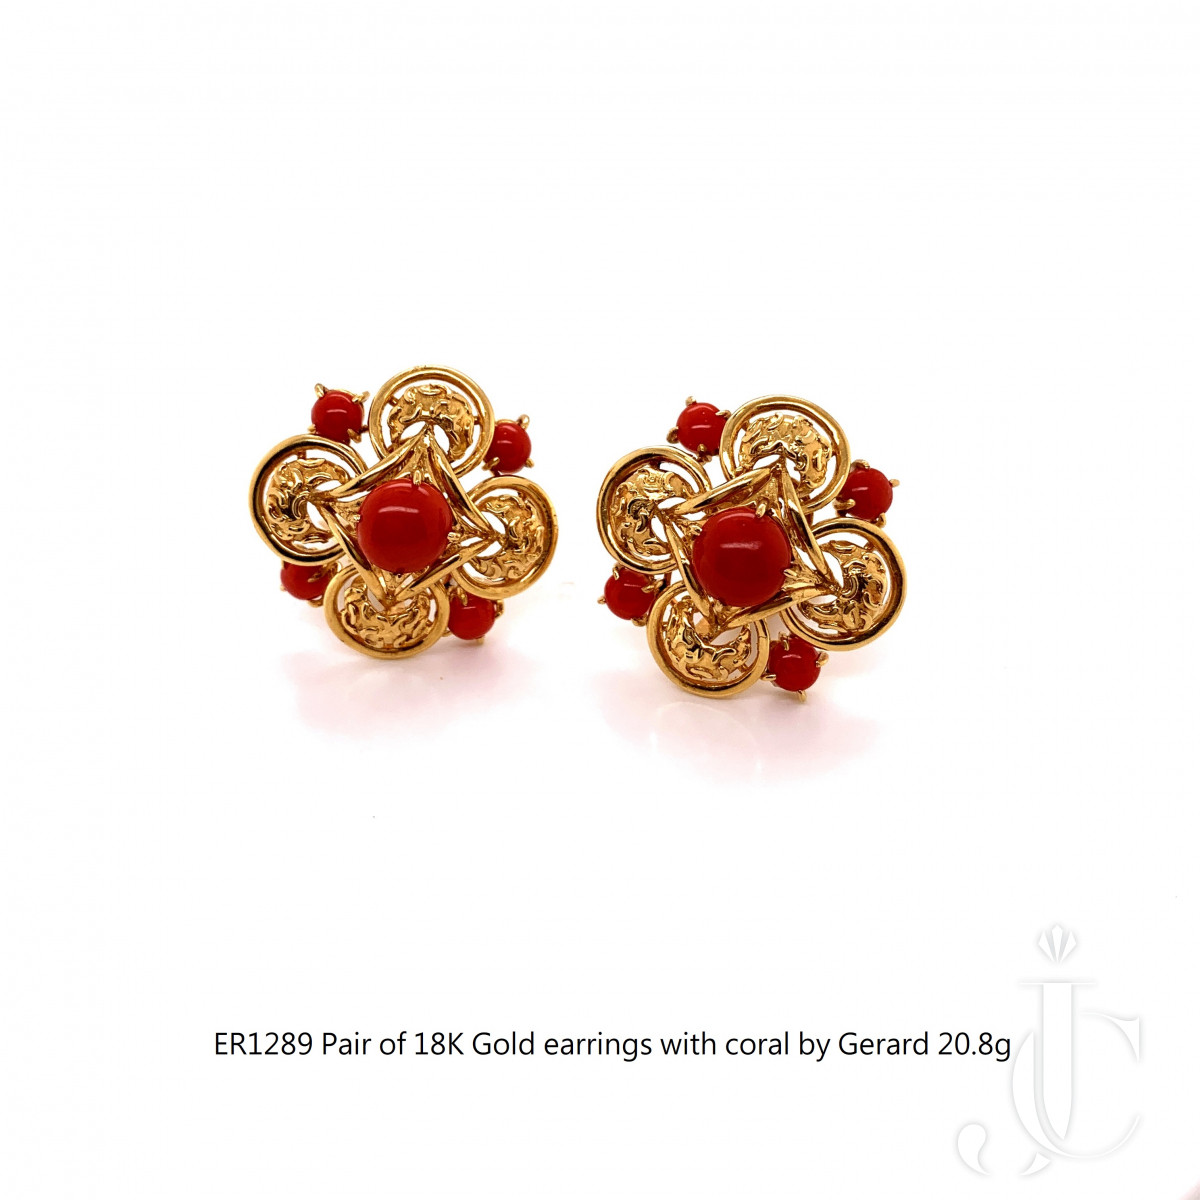 Pair of 18K Gold French earrings with coral by Gerard